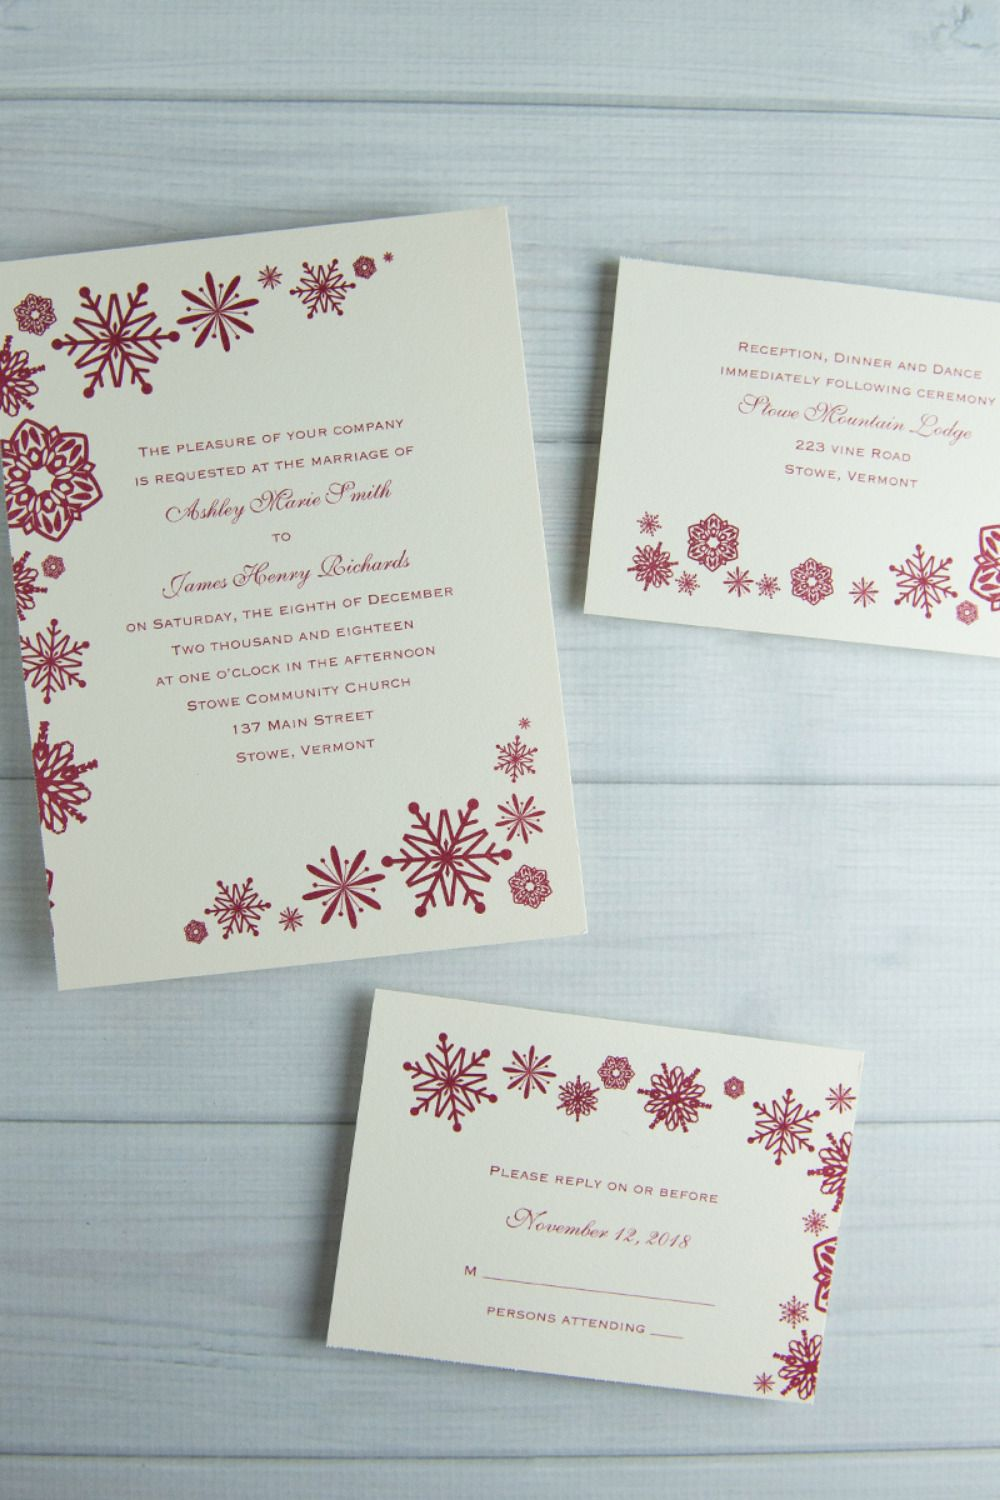 Wedding Invitations & Cakes For Cold Weather Weddings | Cold weather ...